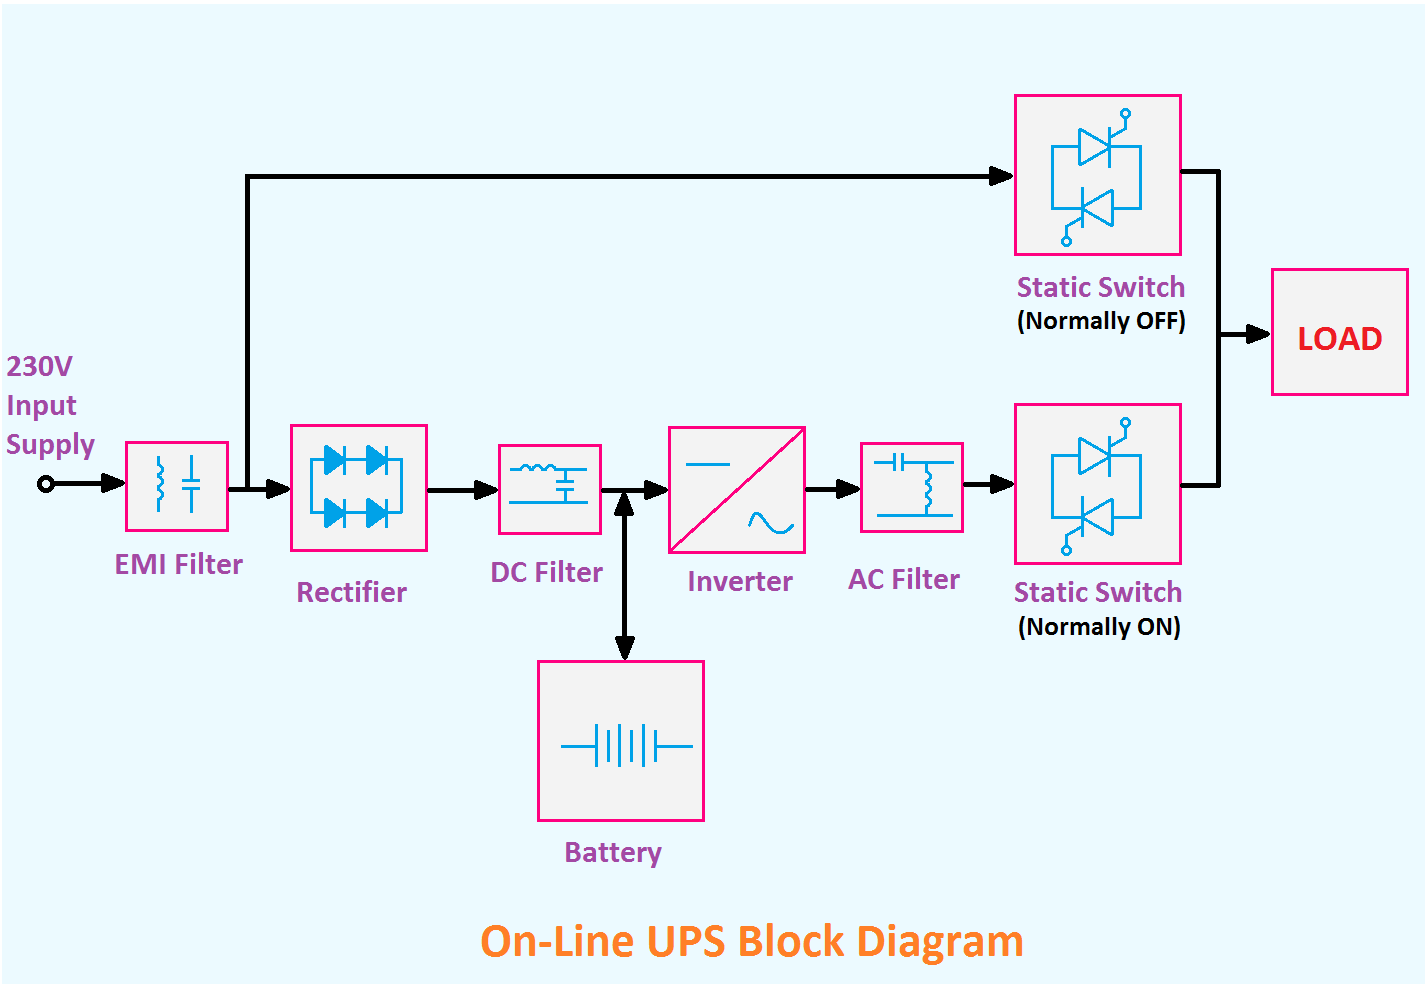 hight resolution of explained offline and online ups block diagram etechnog schematic 3 phase ups online ups block